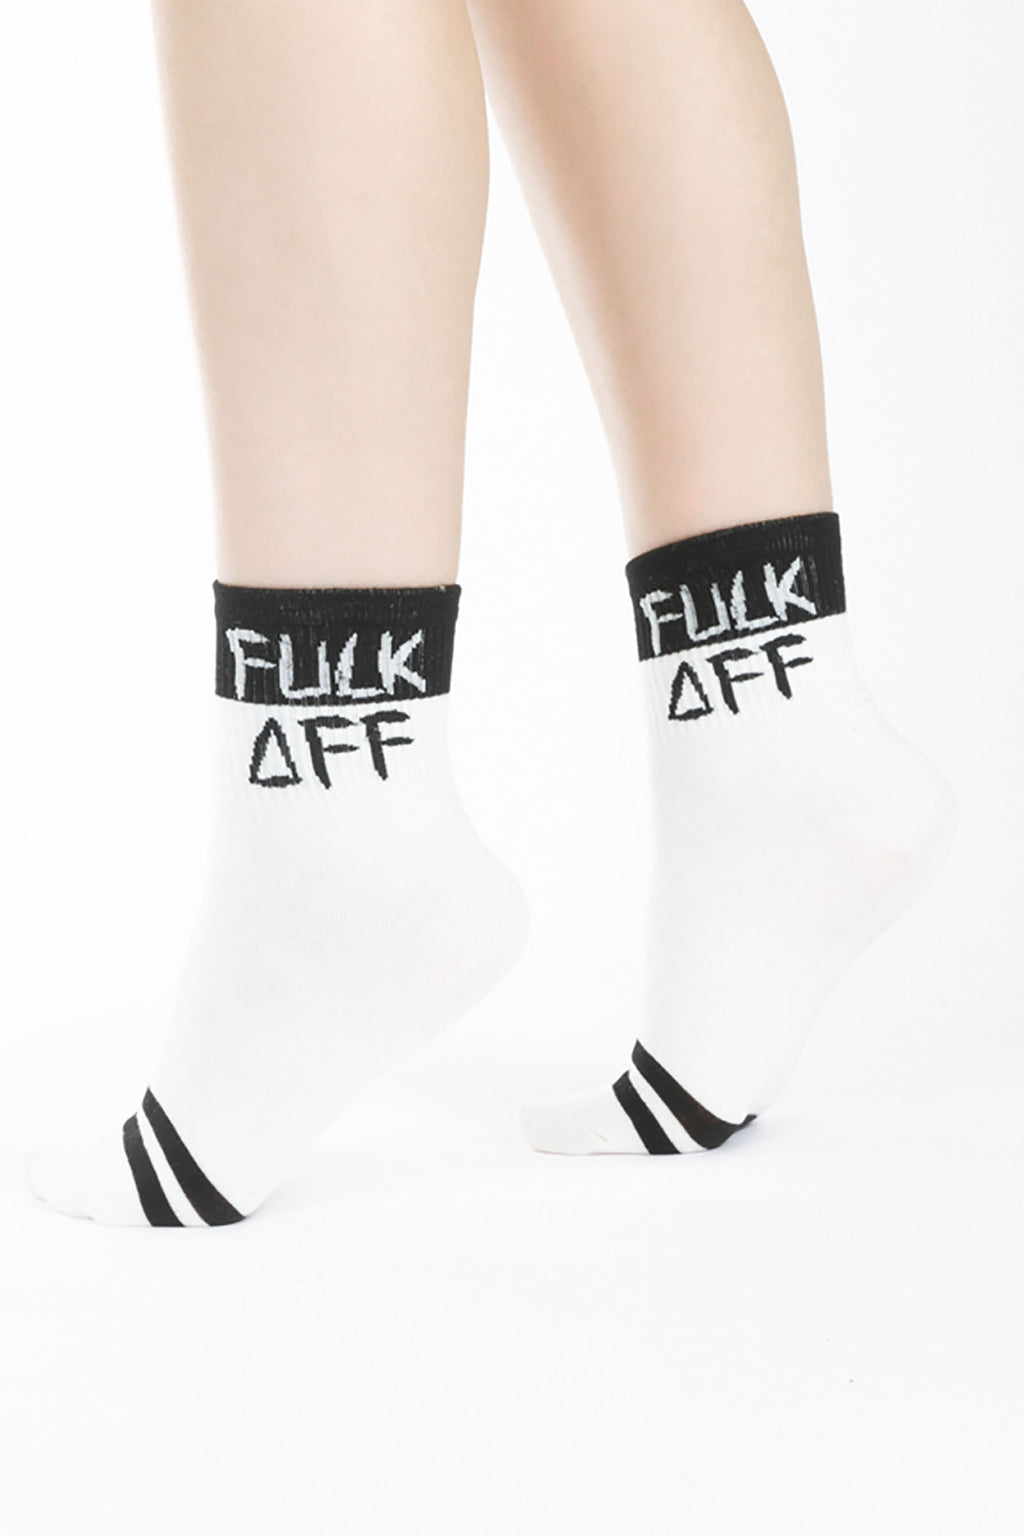 Fuck Off Socks with Attitude